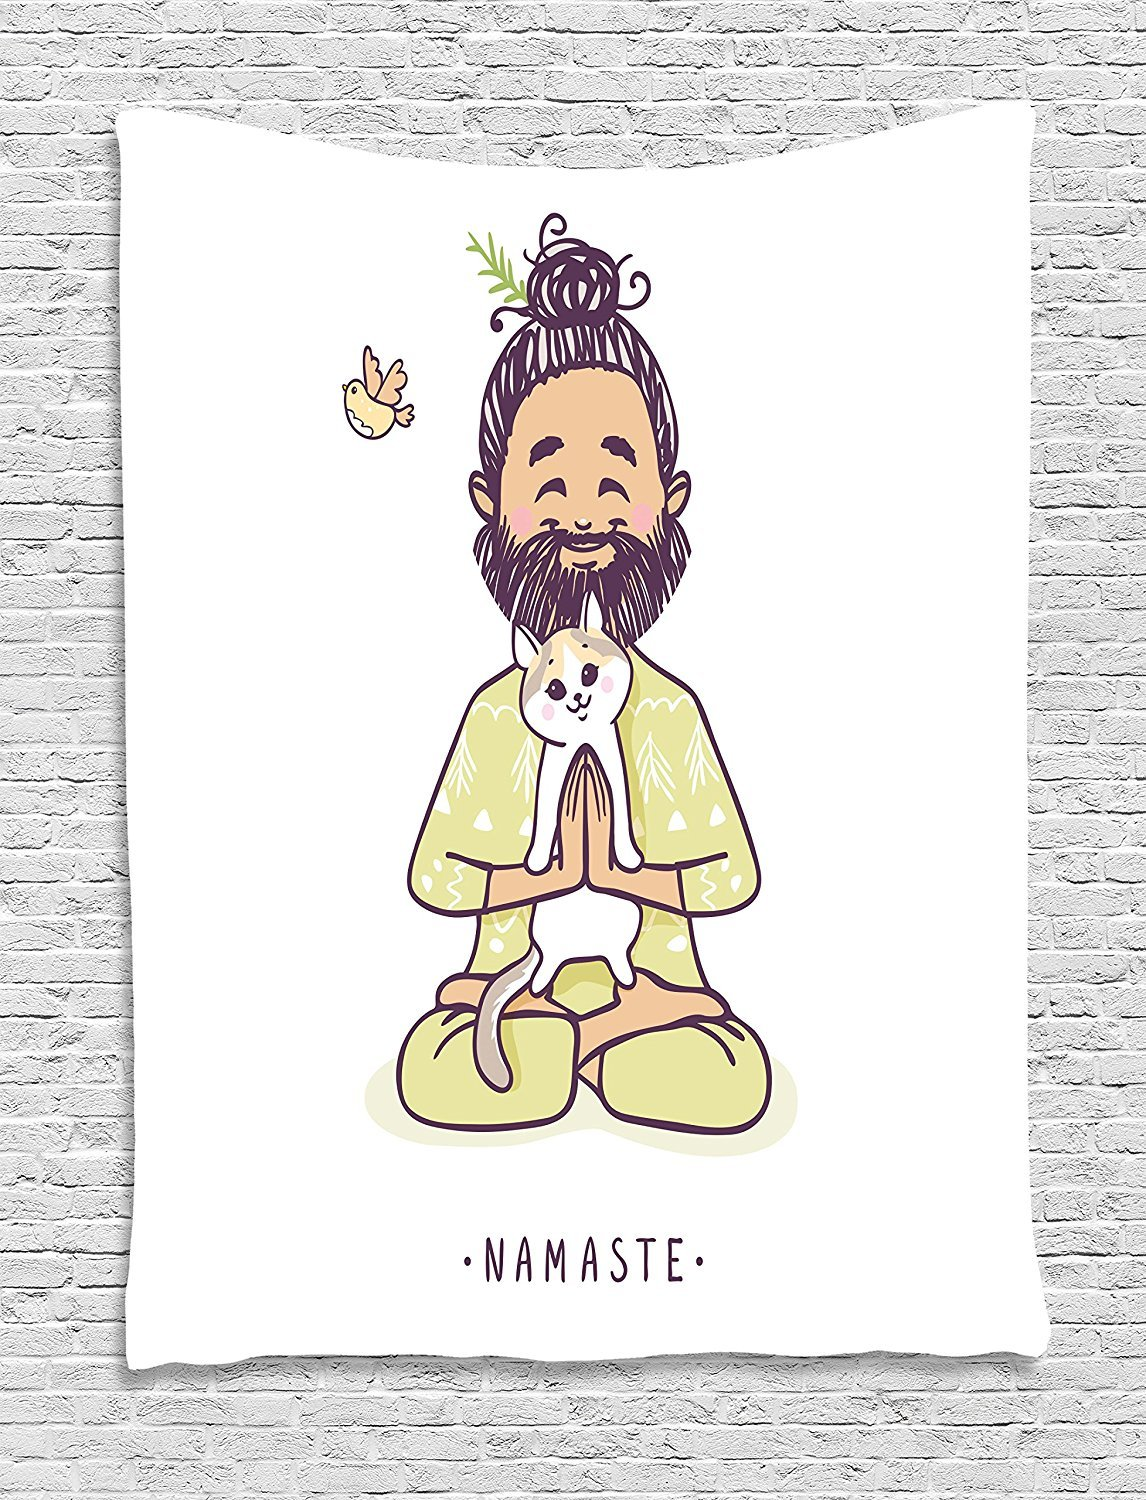 asddcdfdd Funny Tapestry, Positive Man with Cat in Yoga Greeting Pose Namaste Chakra Animal Love Design, Wall Hanging for Bedroom Living Room Dorm, 60 W X 80 L Inches, Pale Green White